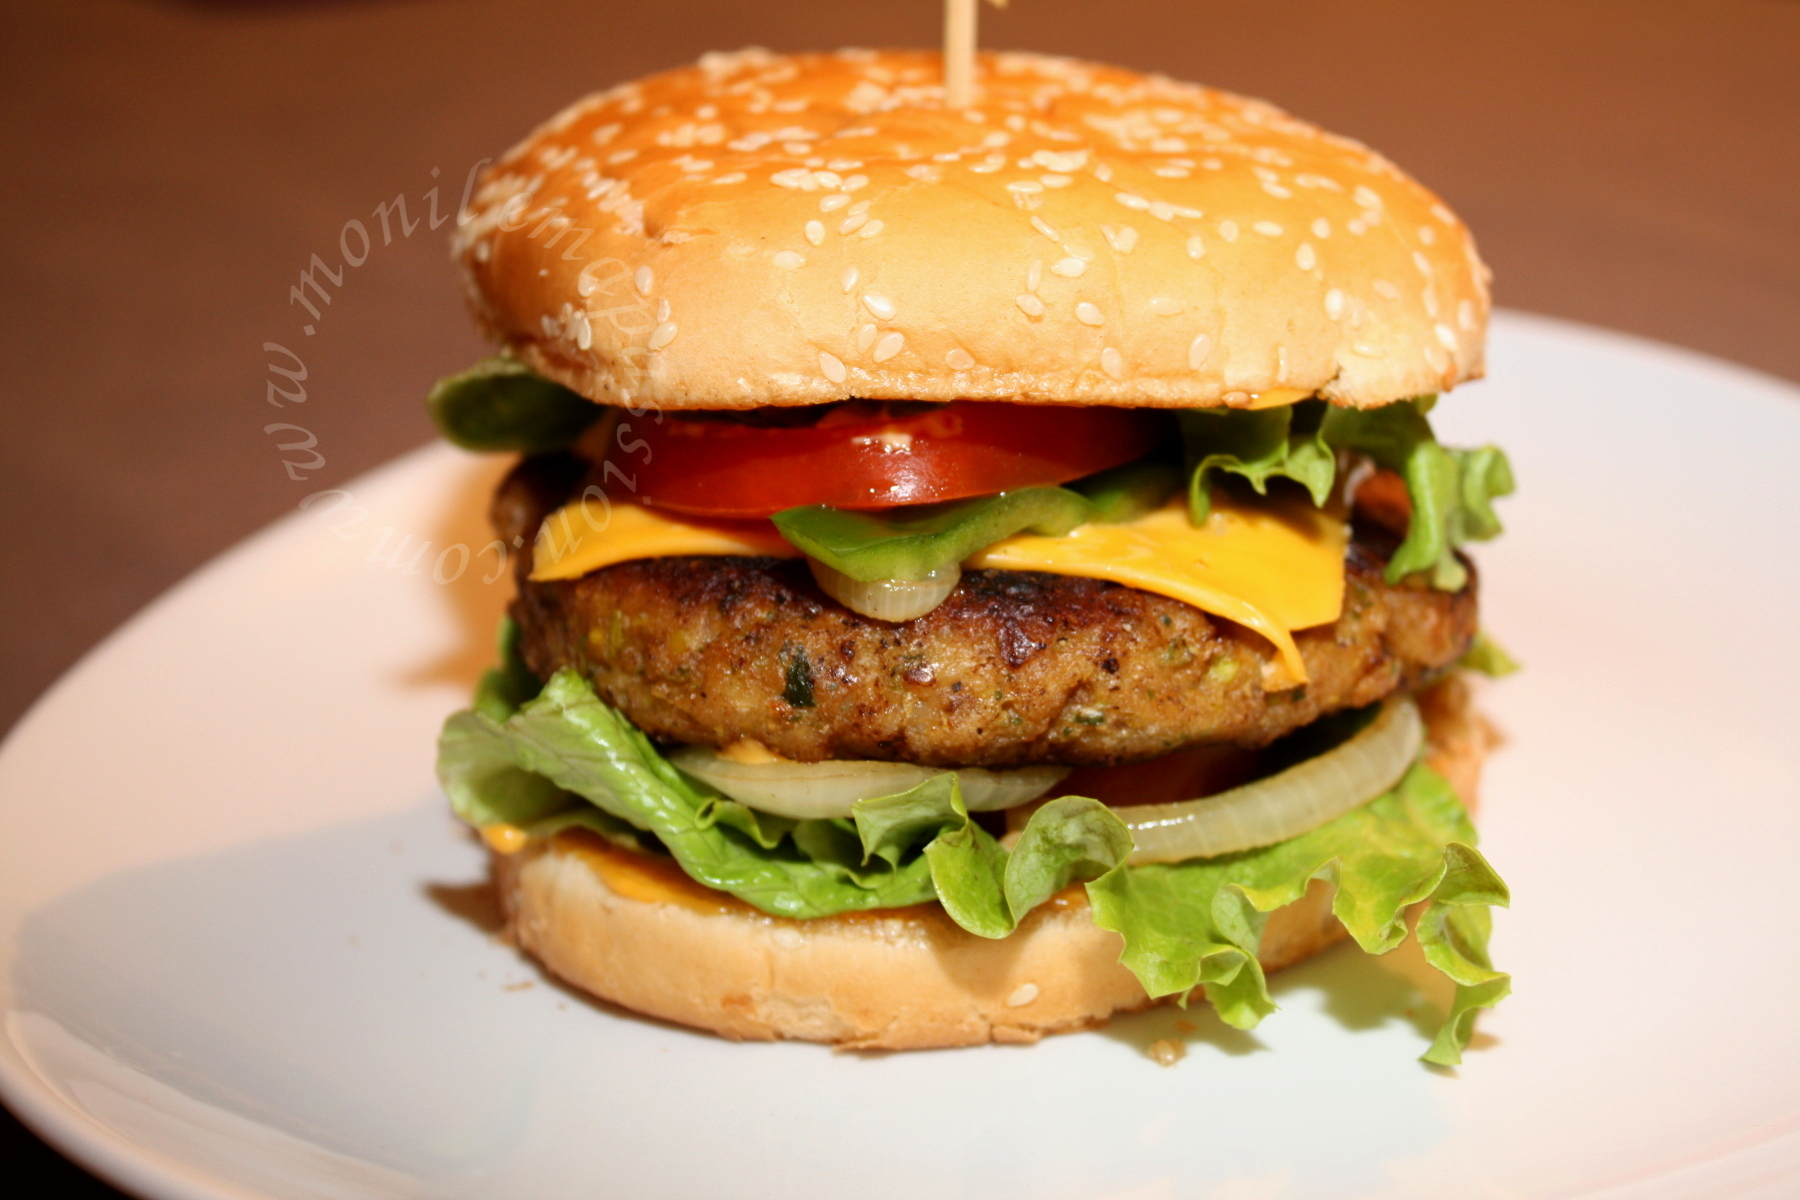 Steaks hachés de poulet maison- Homemade chicken burger patties